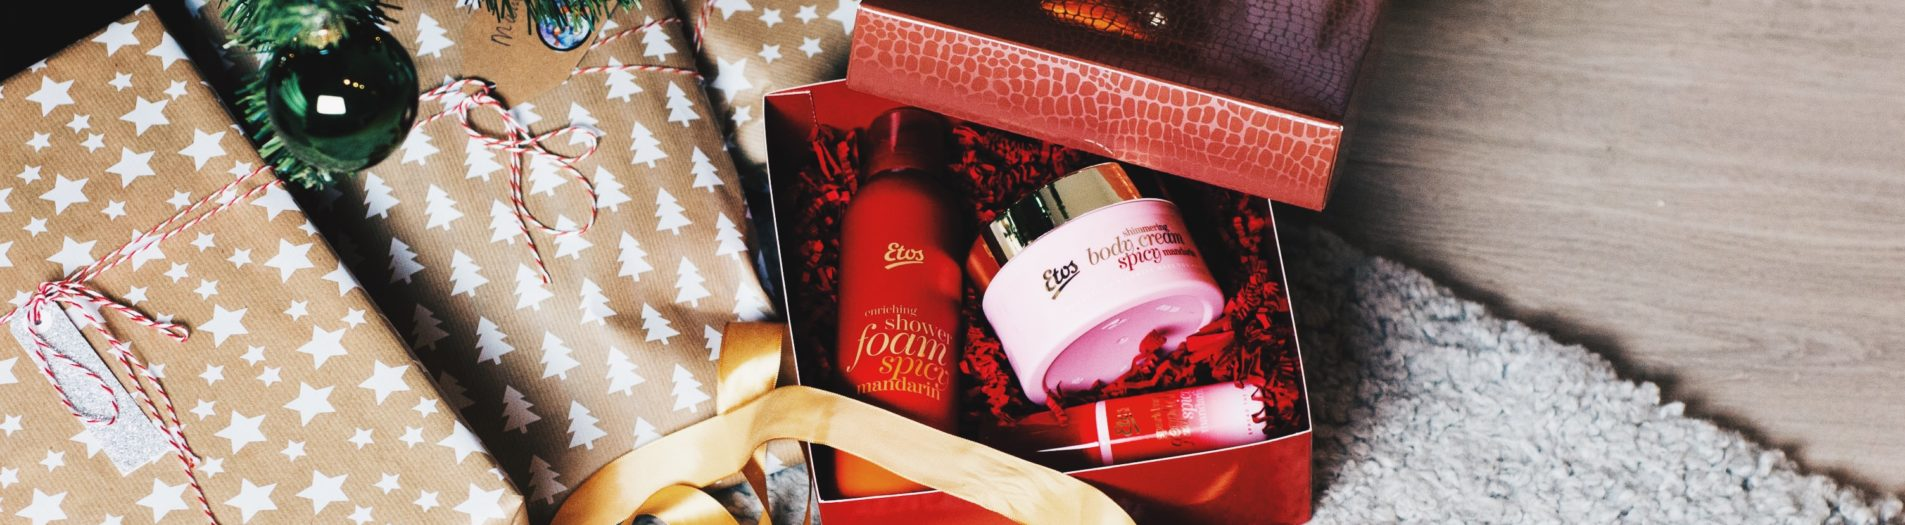 Etos Friends: december goodiebag